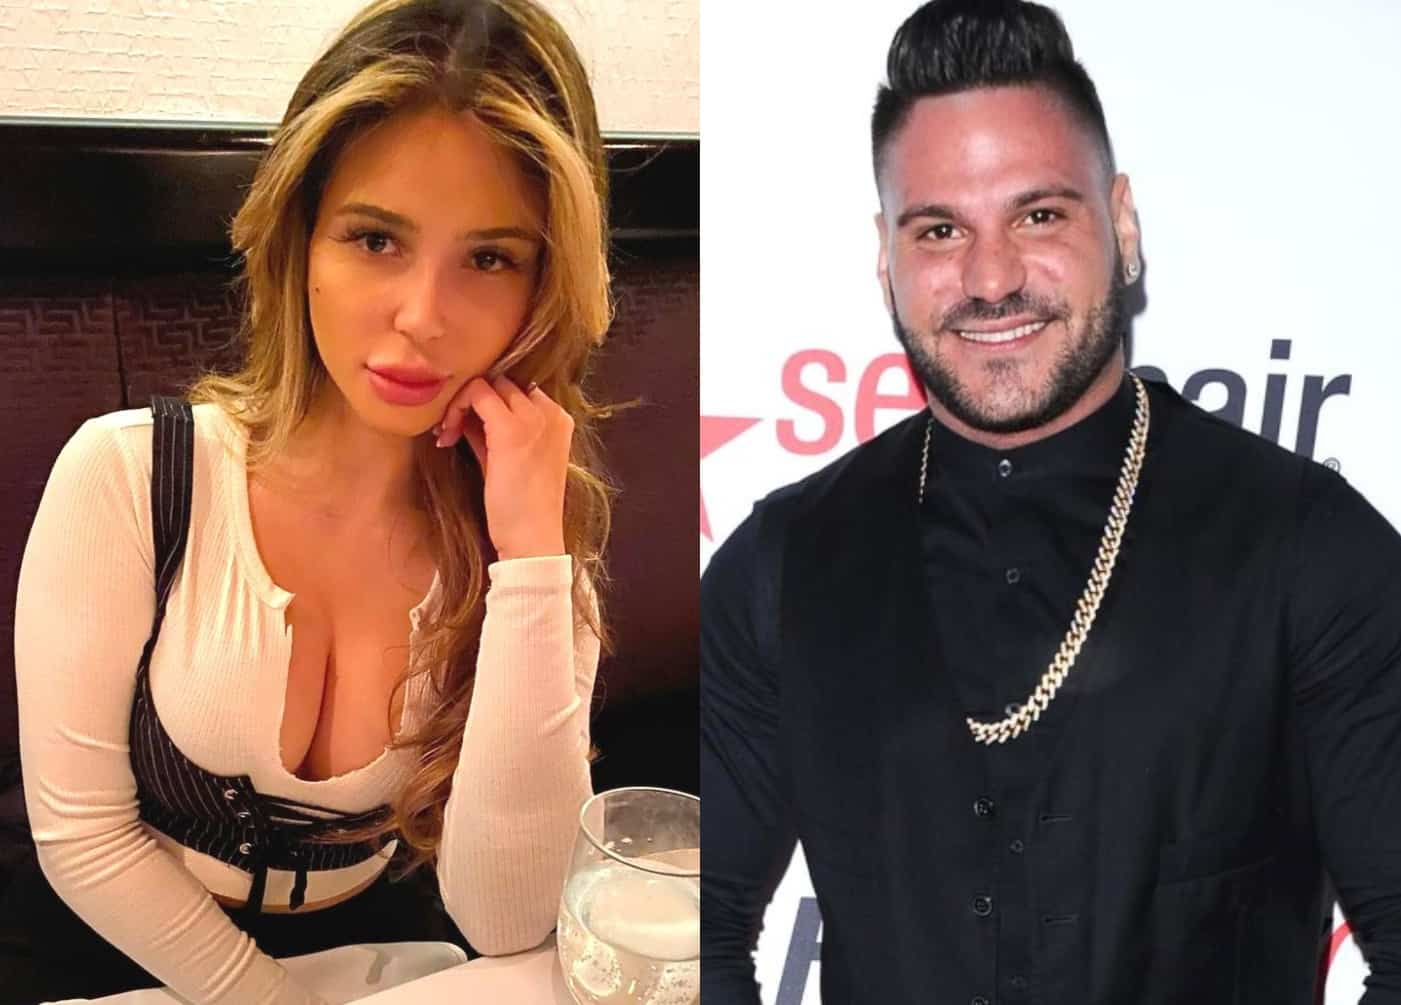 REPORT: Ronnie Ortiz-Magro's Girlfriend Saffire Called Cops on Him Before His Arrest, Cops Saw 'Visible Marks' on Her in Jersey Shore's Star Alleged Domestic Violence Incident